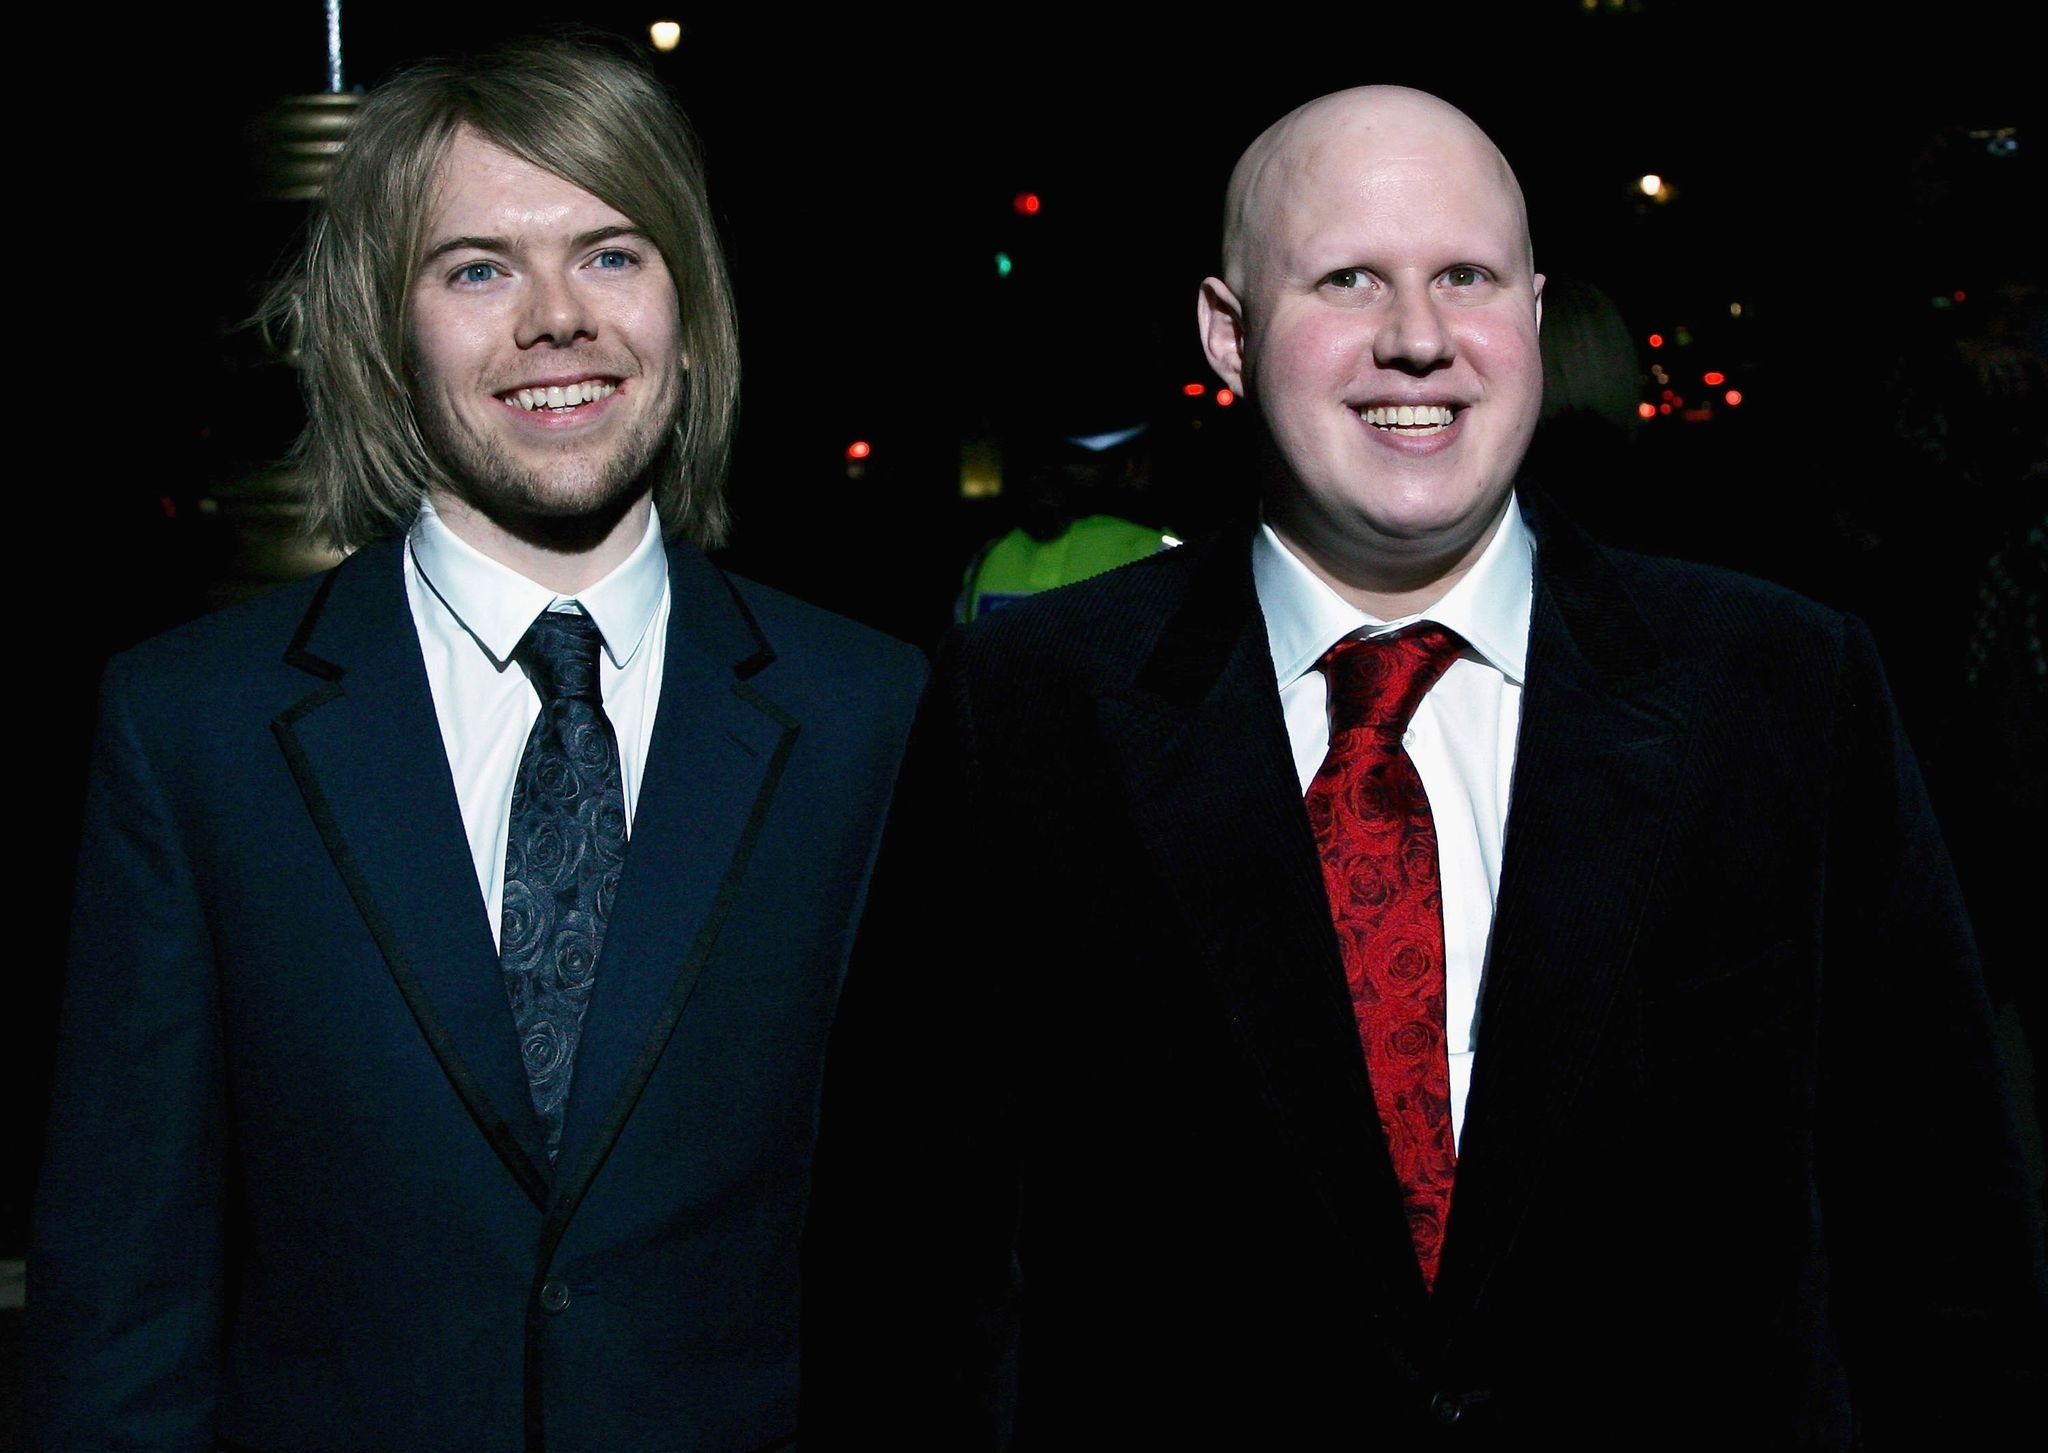 Matt Lucas  and Kevin McGee at their party at The Banqueting House after their Civil Partnership Ceremony in 2006 in London, England | Source: Getty Images